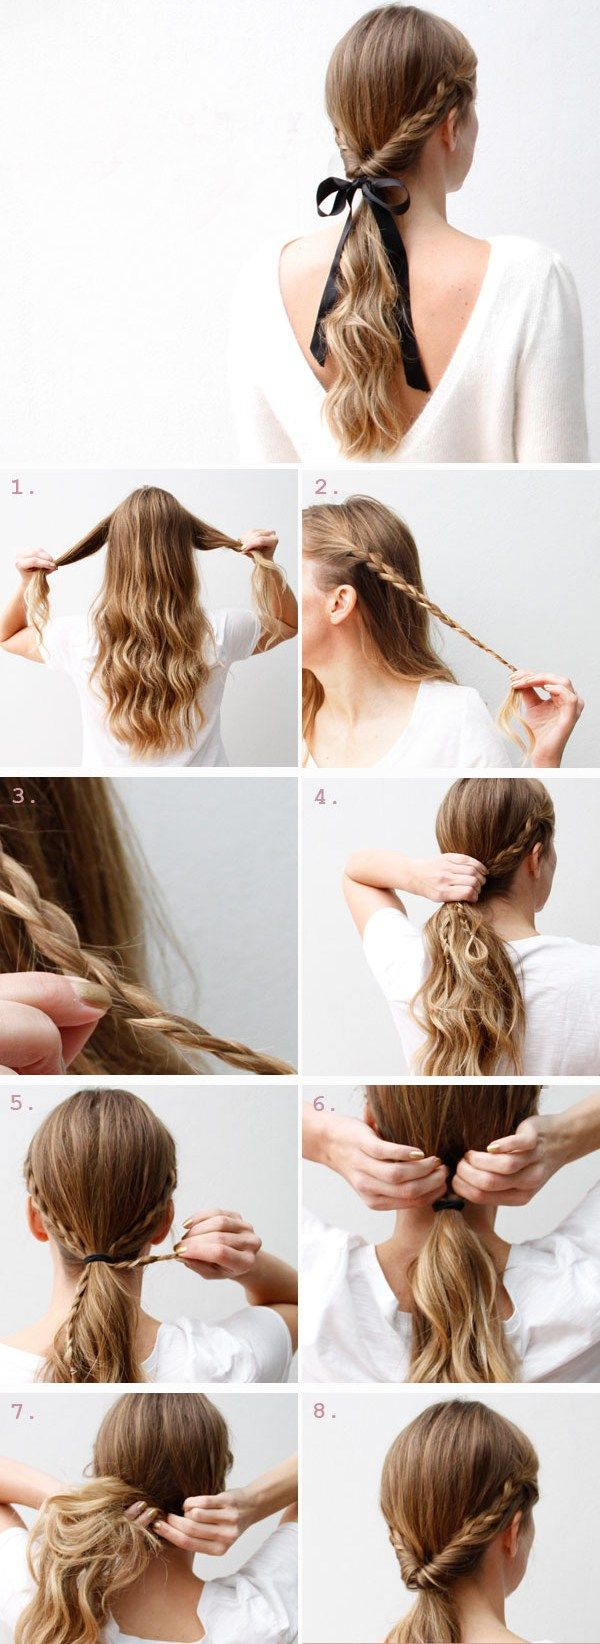 Easy step by step hairstyle tutorials for long hair hairstyles